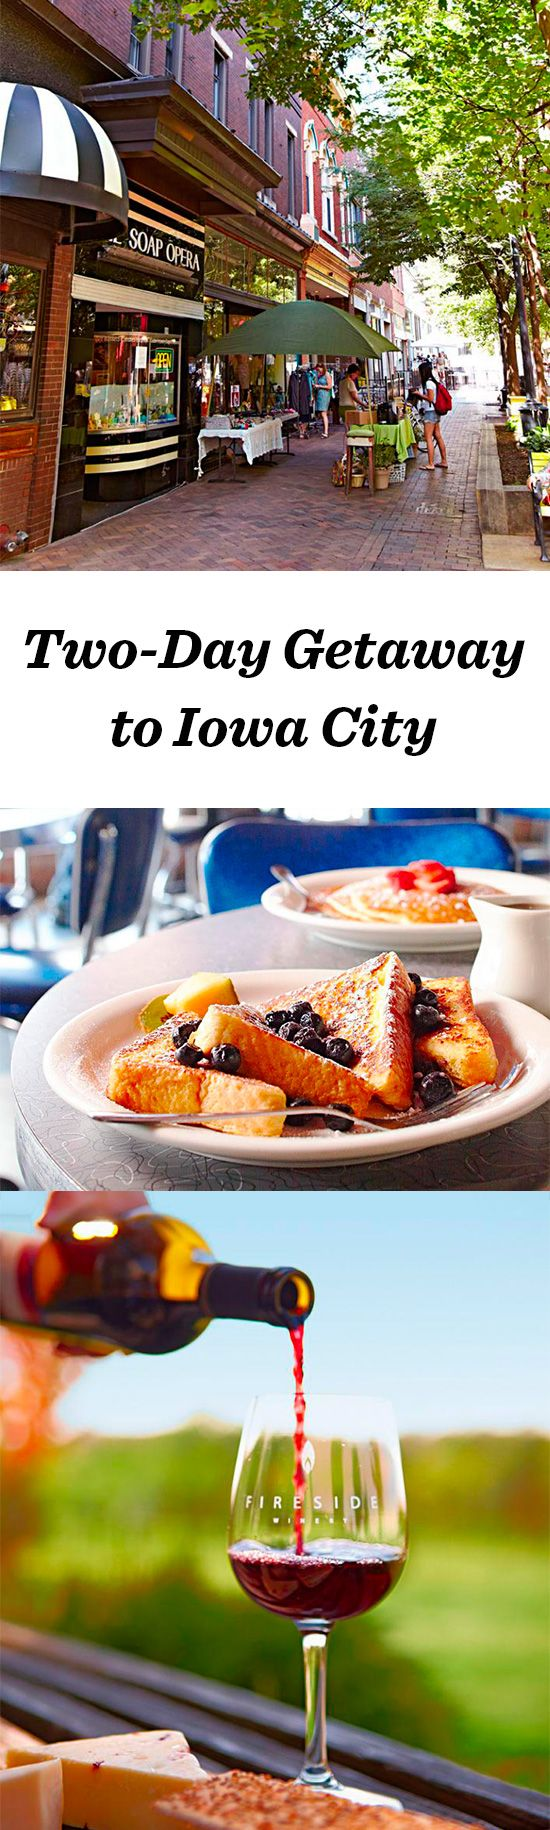 The University Of Iowa Anchors Iowa City, Where An Exciting Cultural Scene  And Eclectic Dining